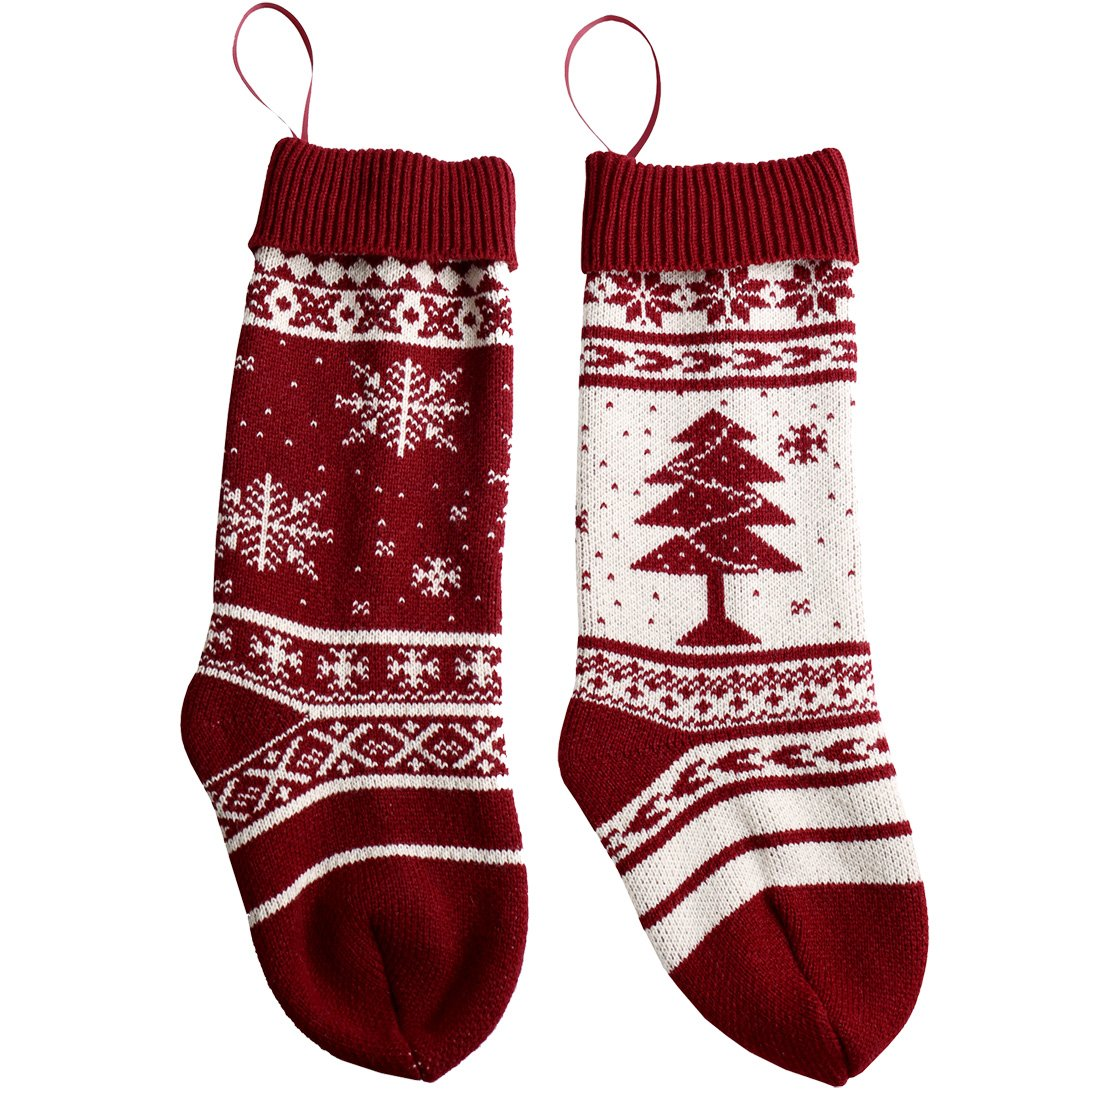 17 Inch Knit Christmas Stockings, Pack 2 Gift Bags Snowflake Tree Pattern